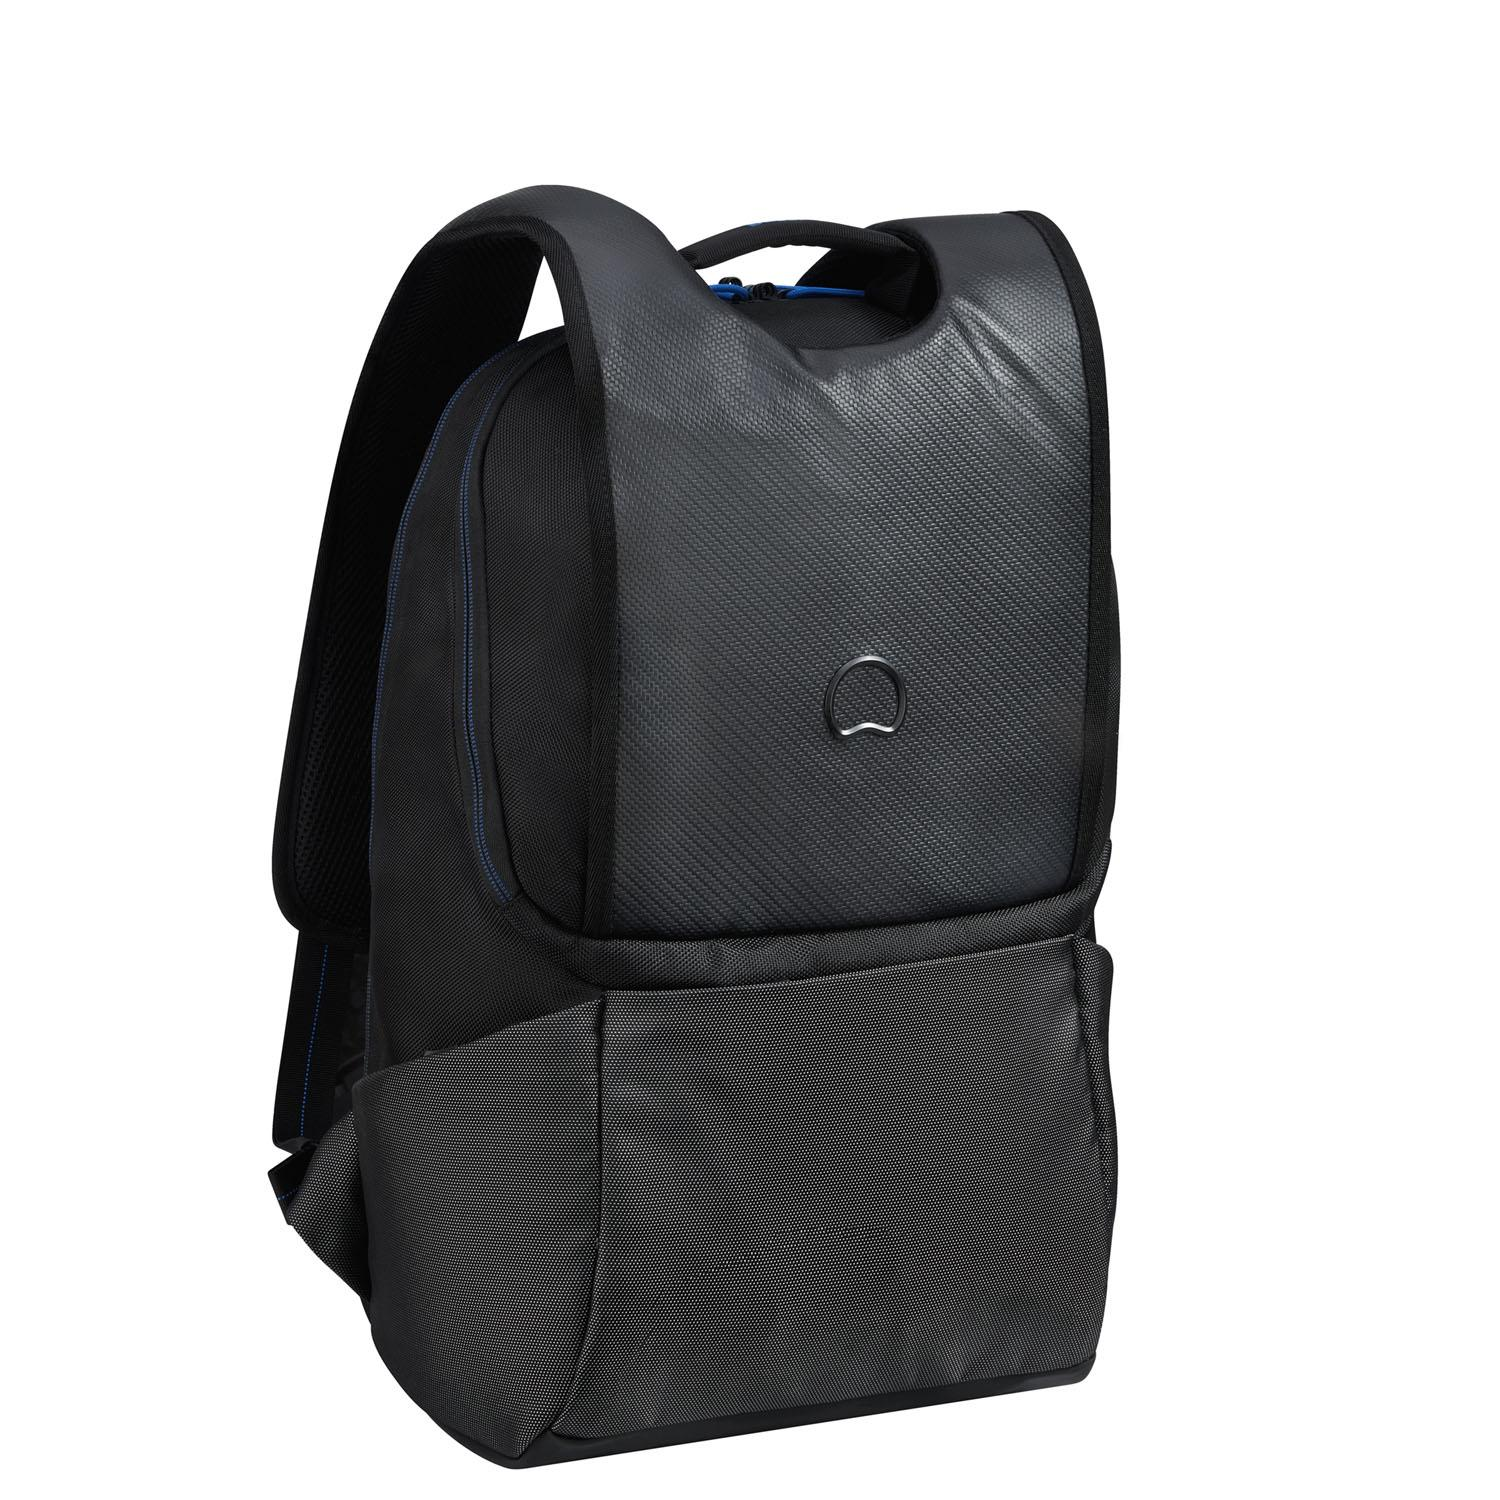 Delsey Online Store In Pakistan Softcase Laptop Notebook 116 Inch Backpacks